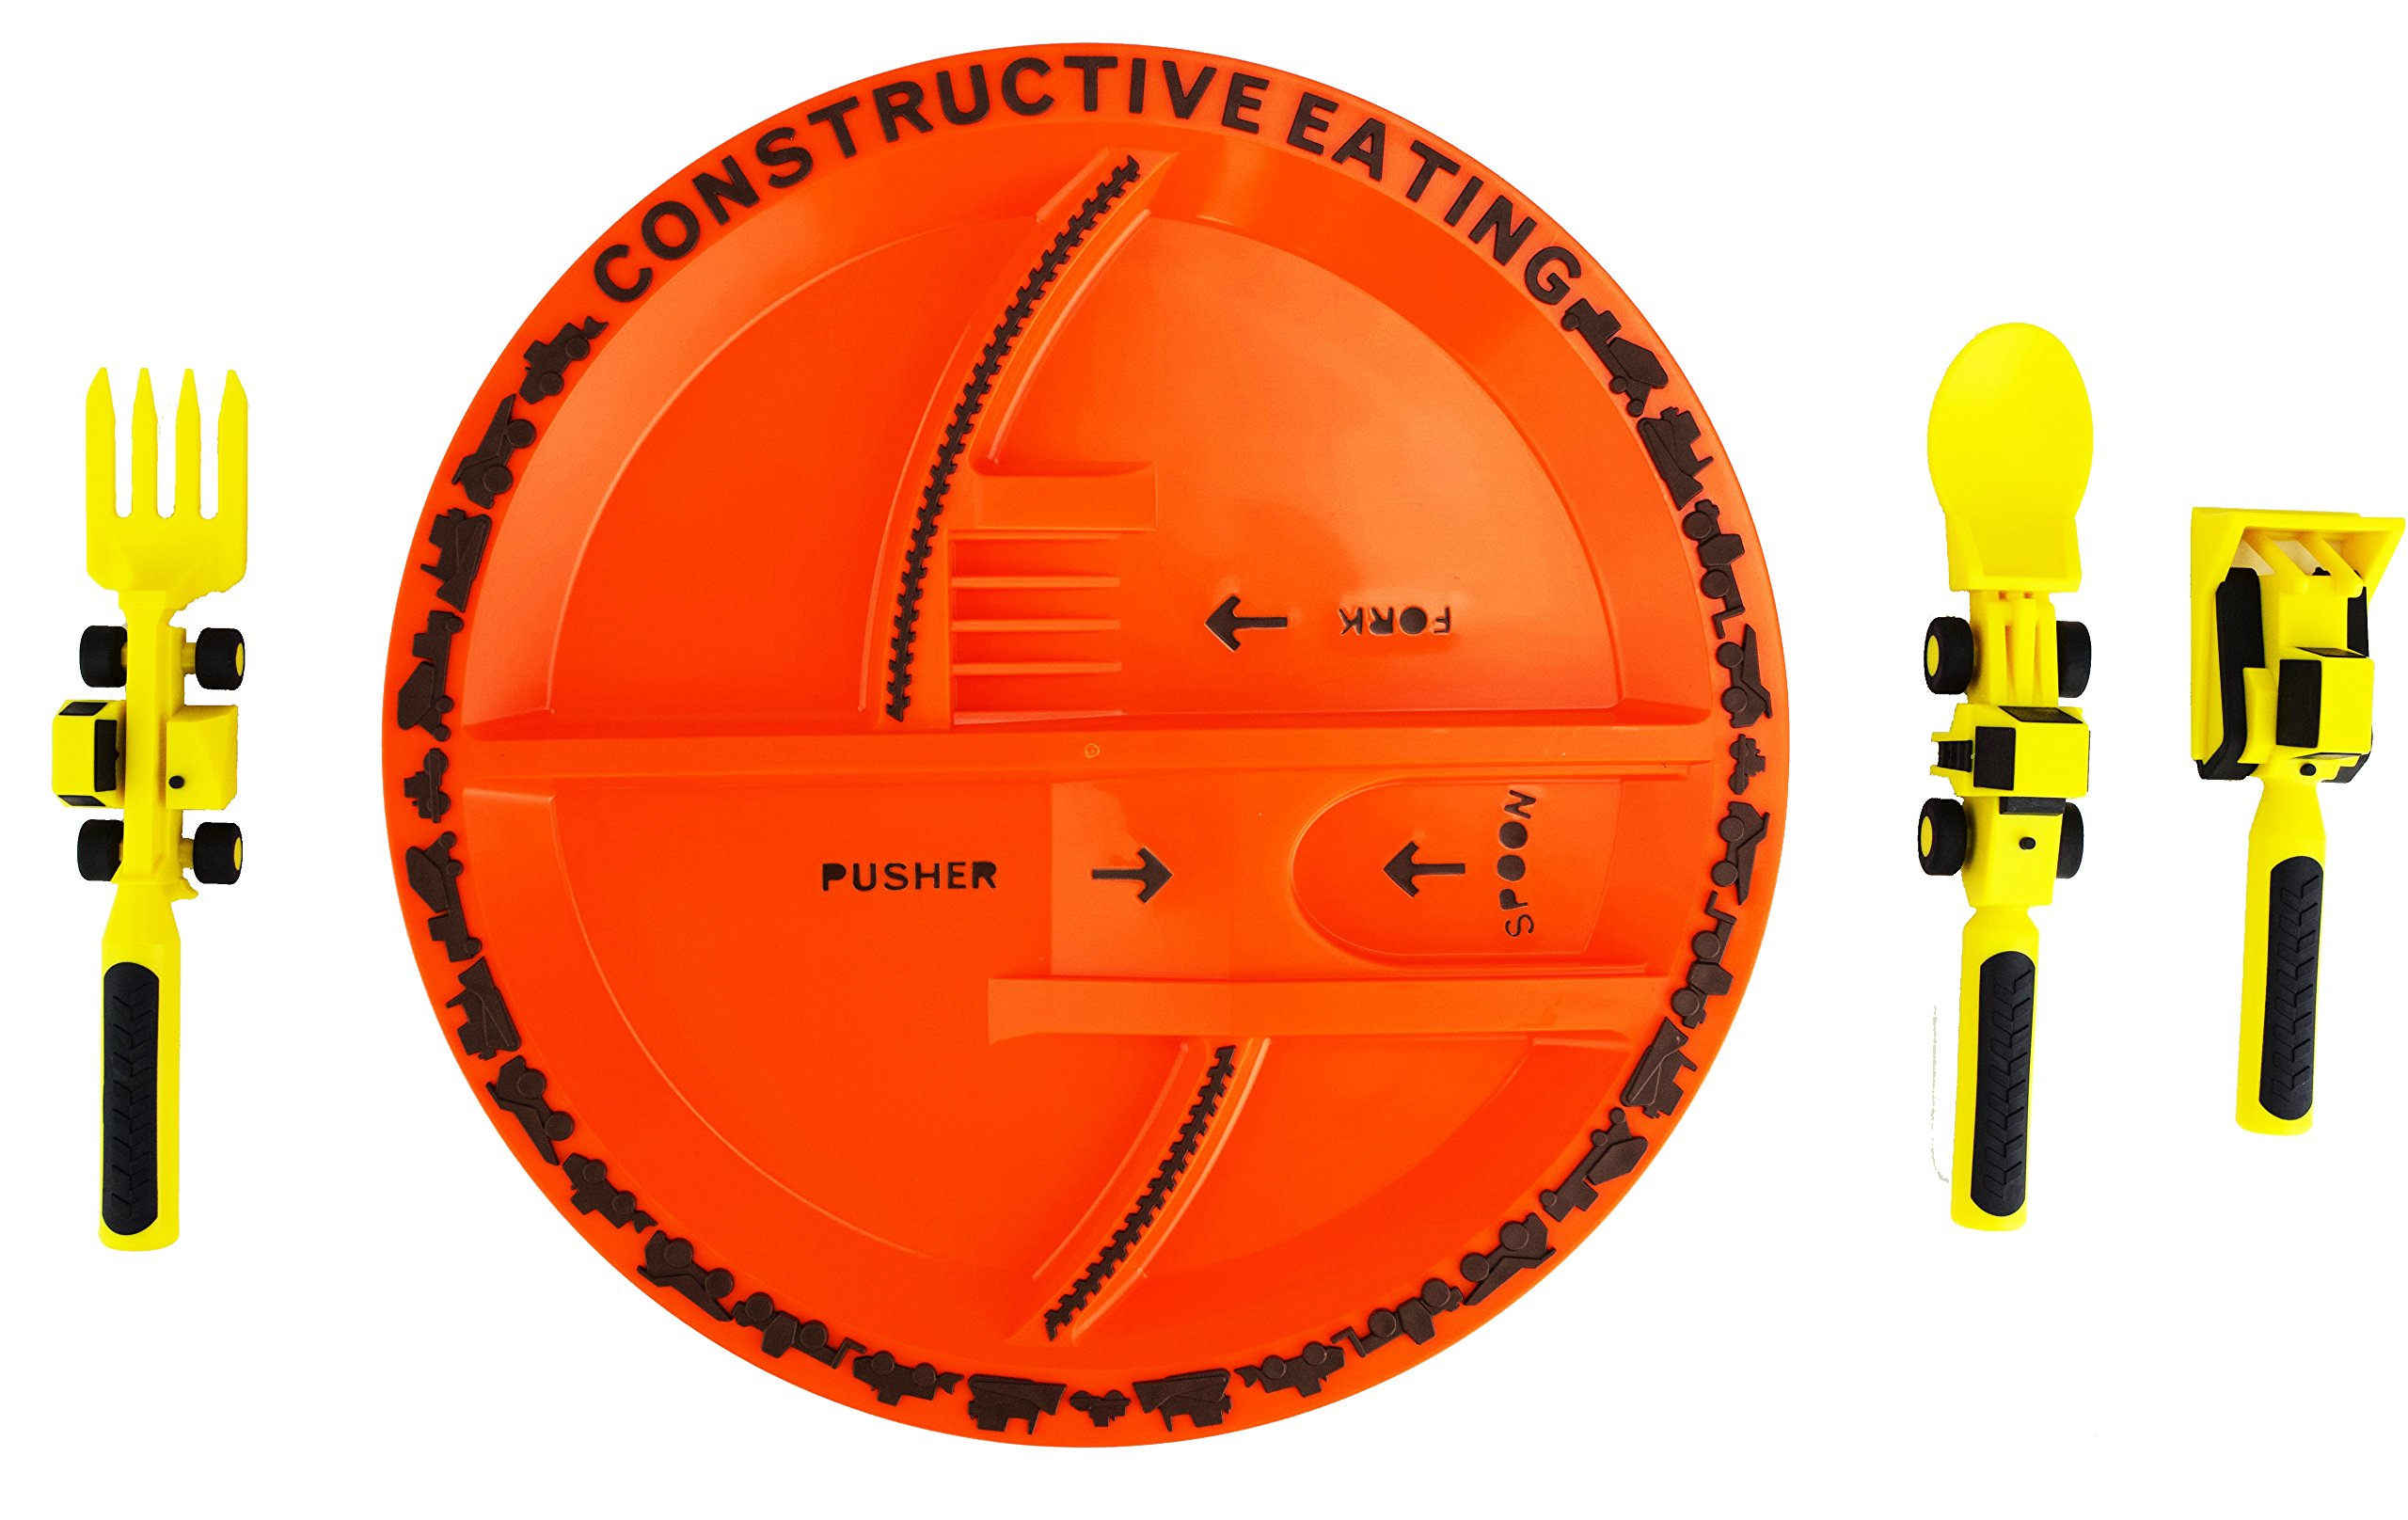 Constructive Eating Construction Plate with Construction Utensil Set for Toddlers, Babies, Infants and Kids - Flatware Toys are Made in the USA with FDA Approved Materials for Safe and Fun Eating by Constructive Eating